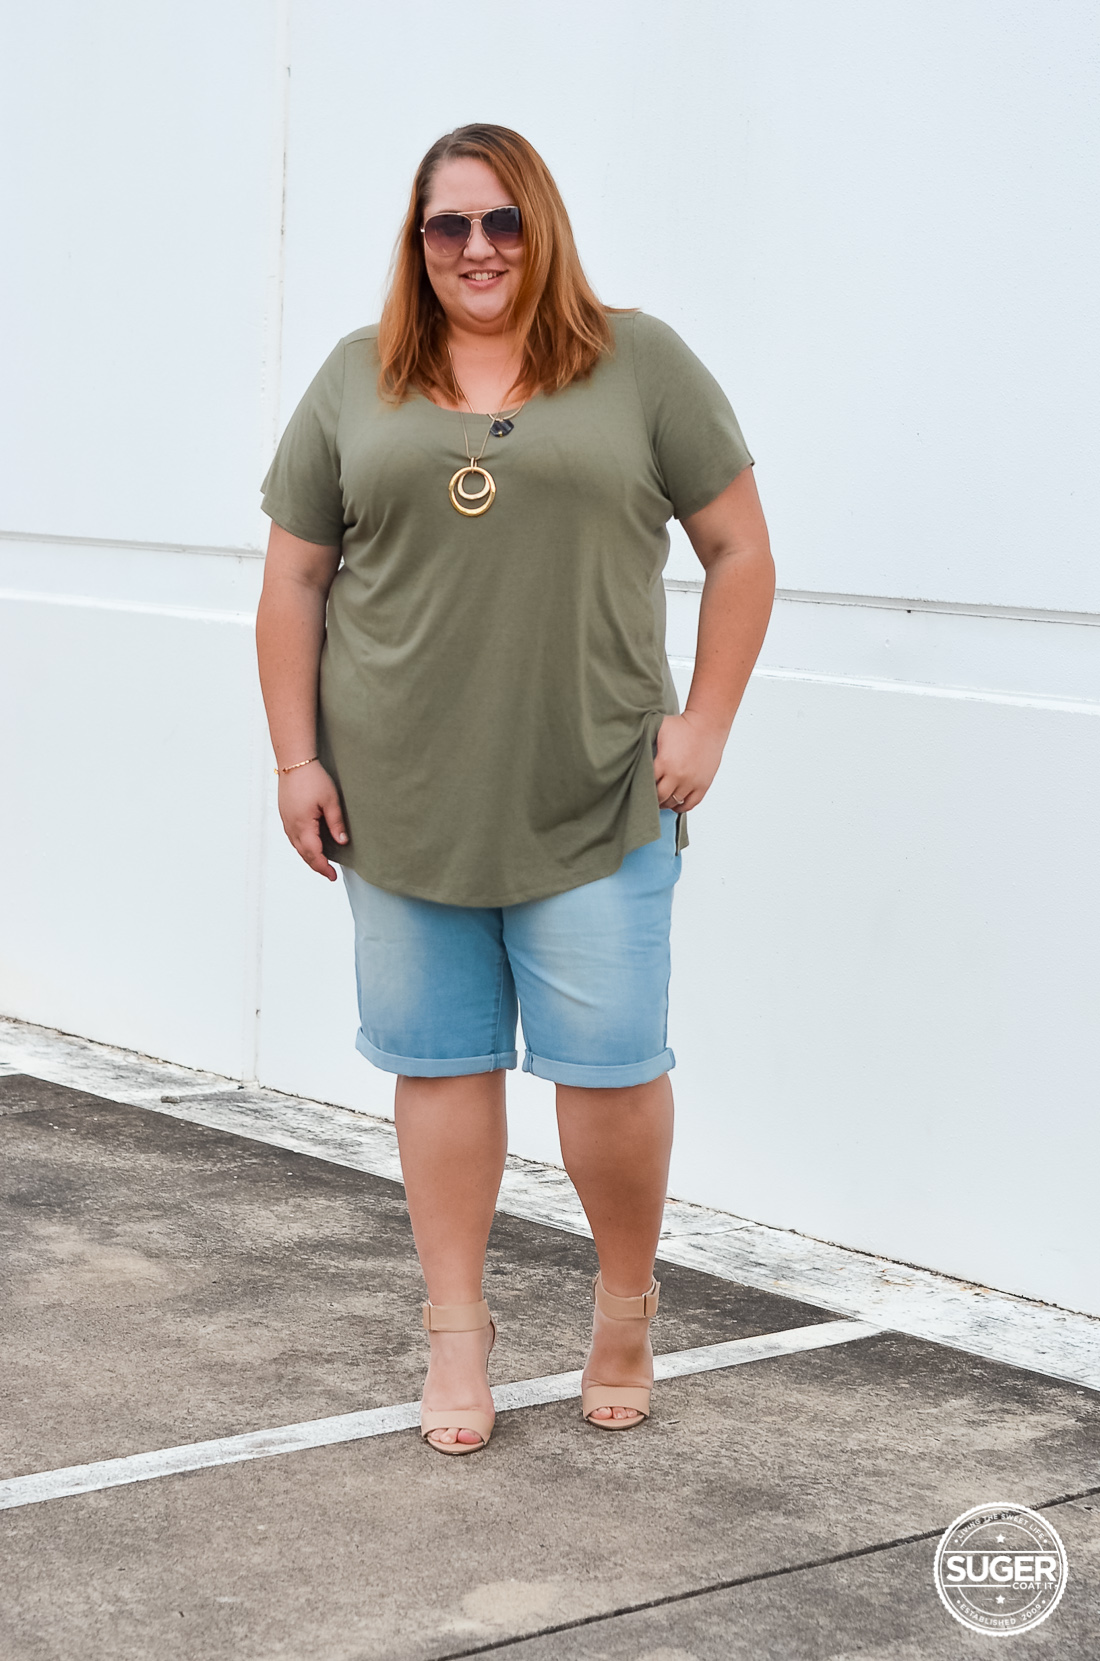 beme summer shorts australia plus size fashion blogger review